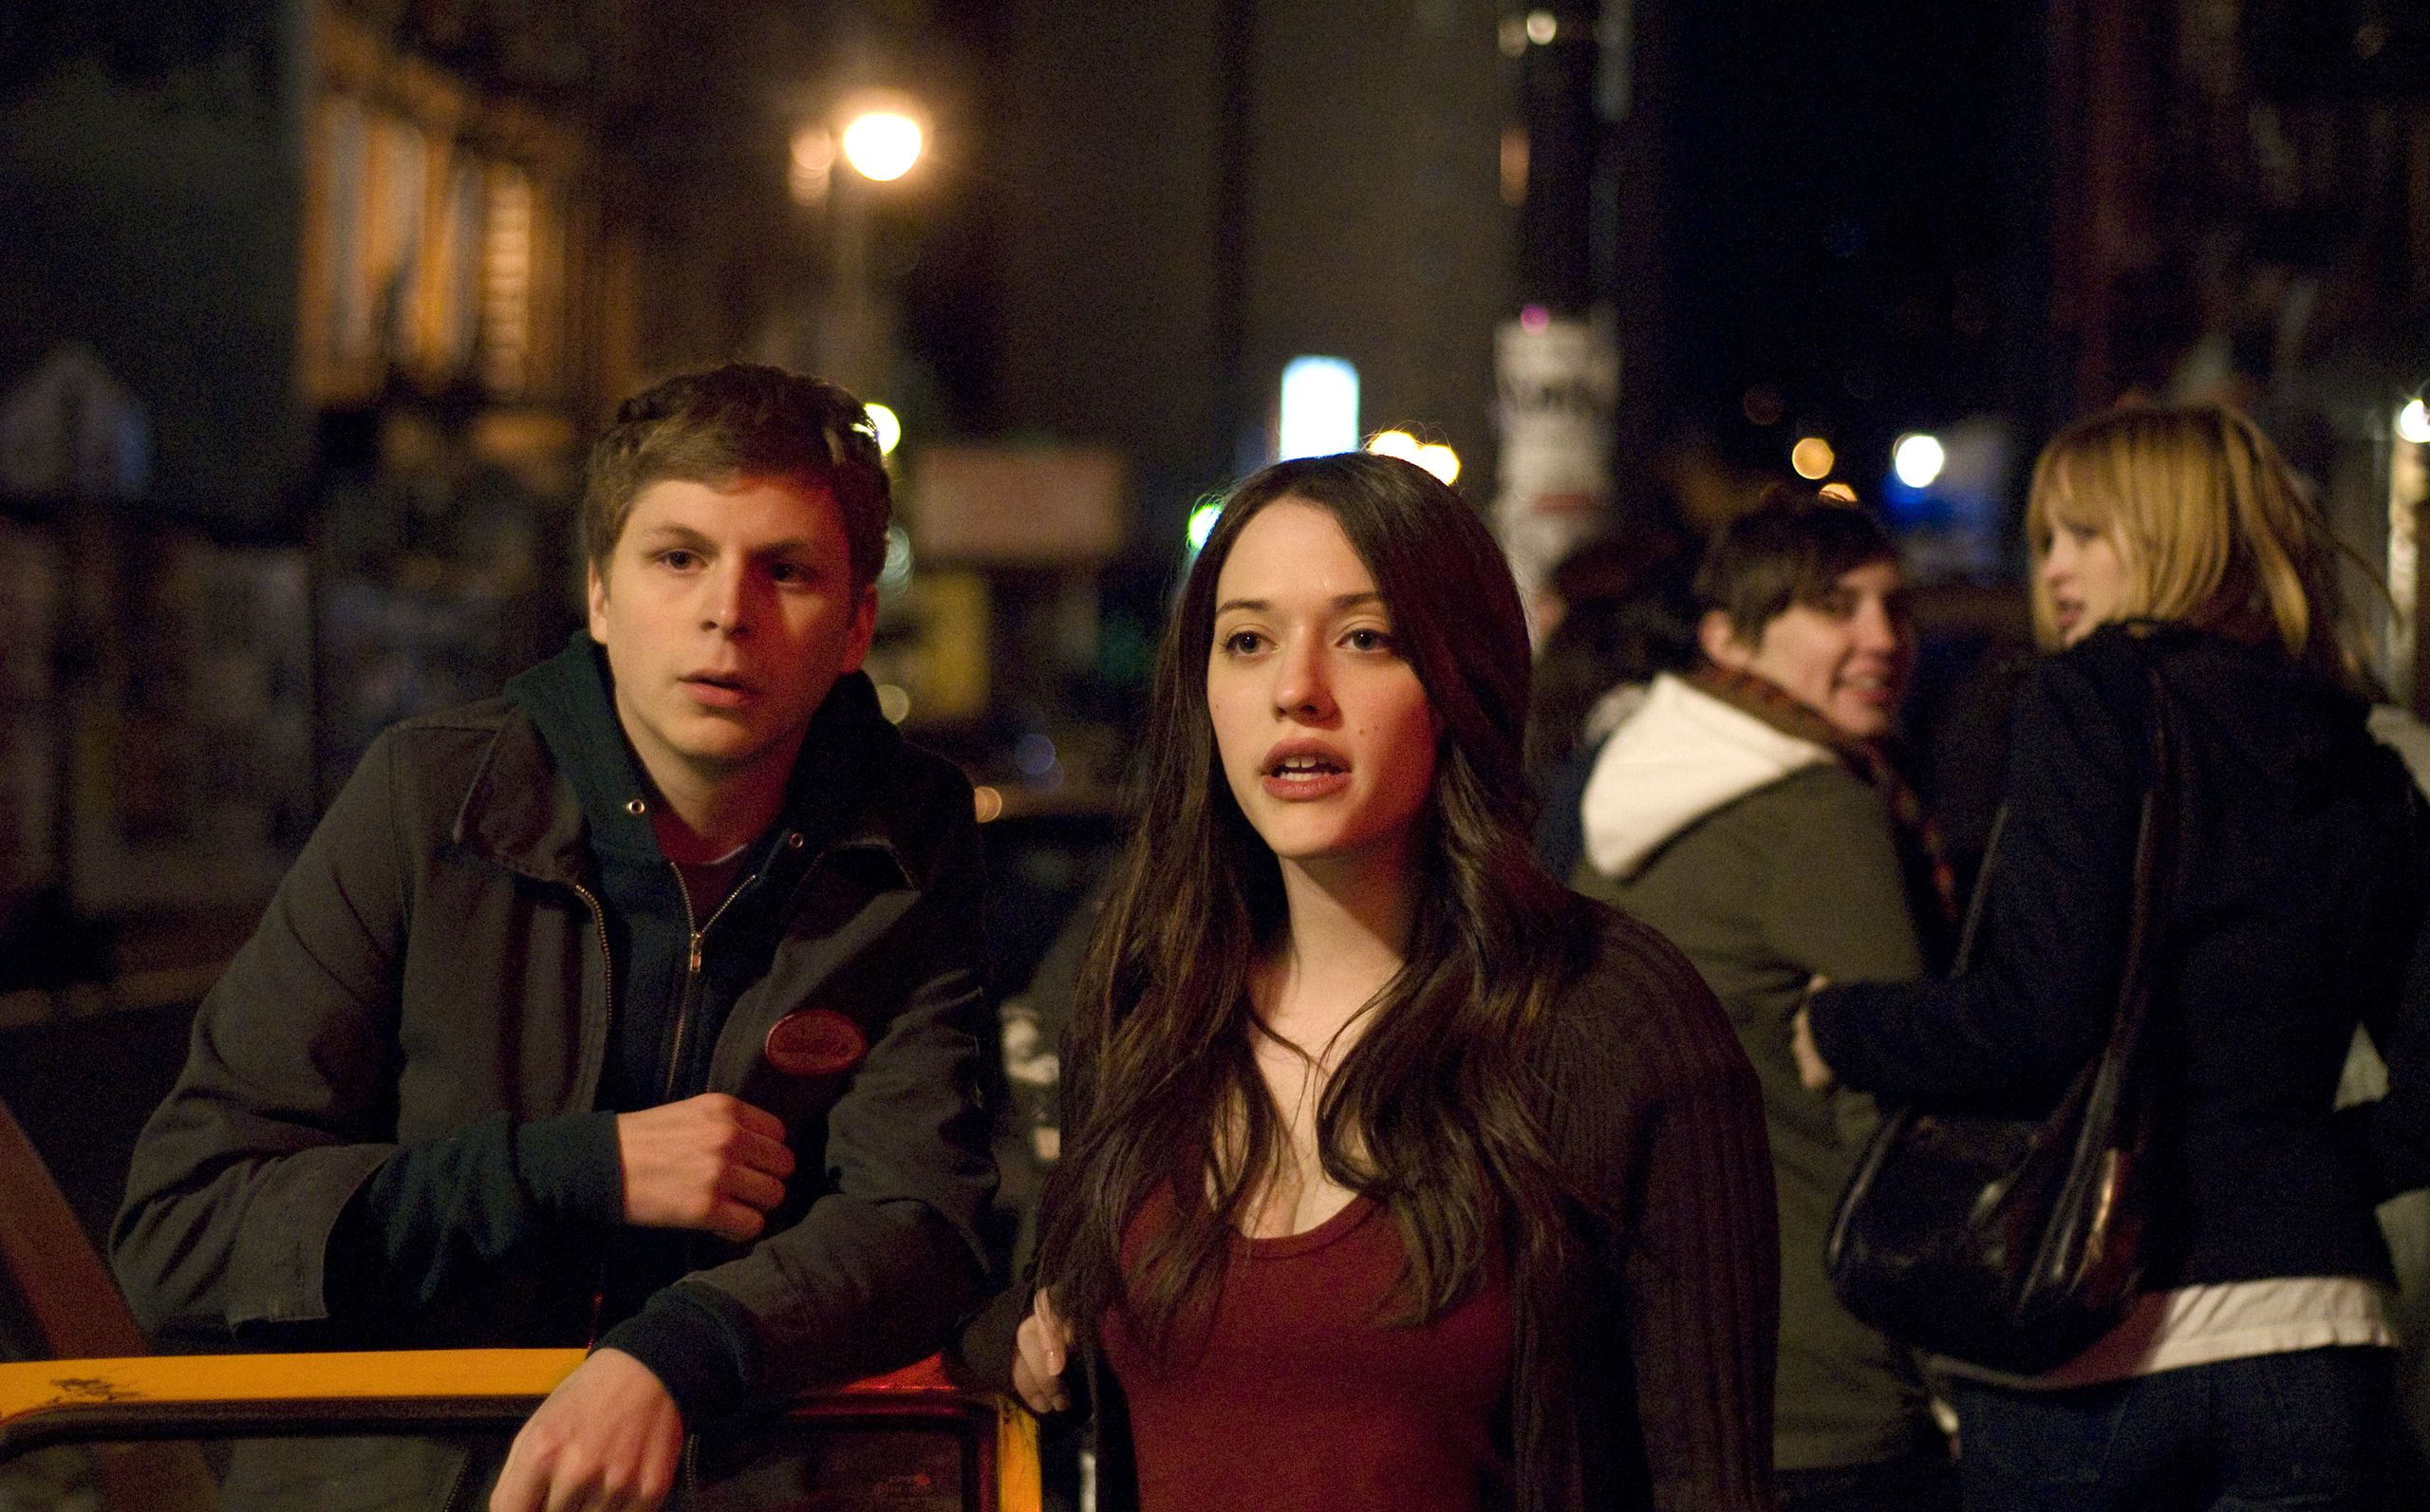 An image from Nick and Norah's Infinite Playlist